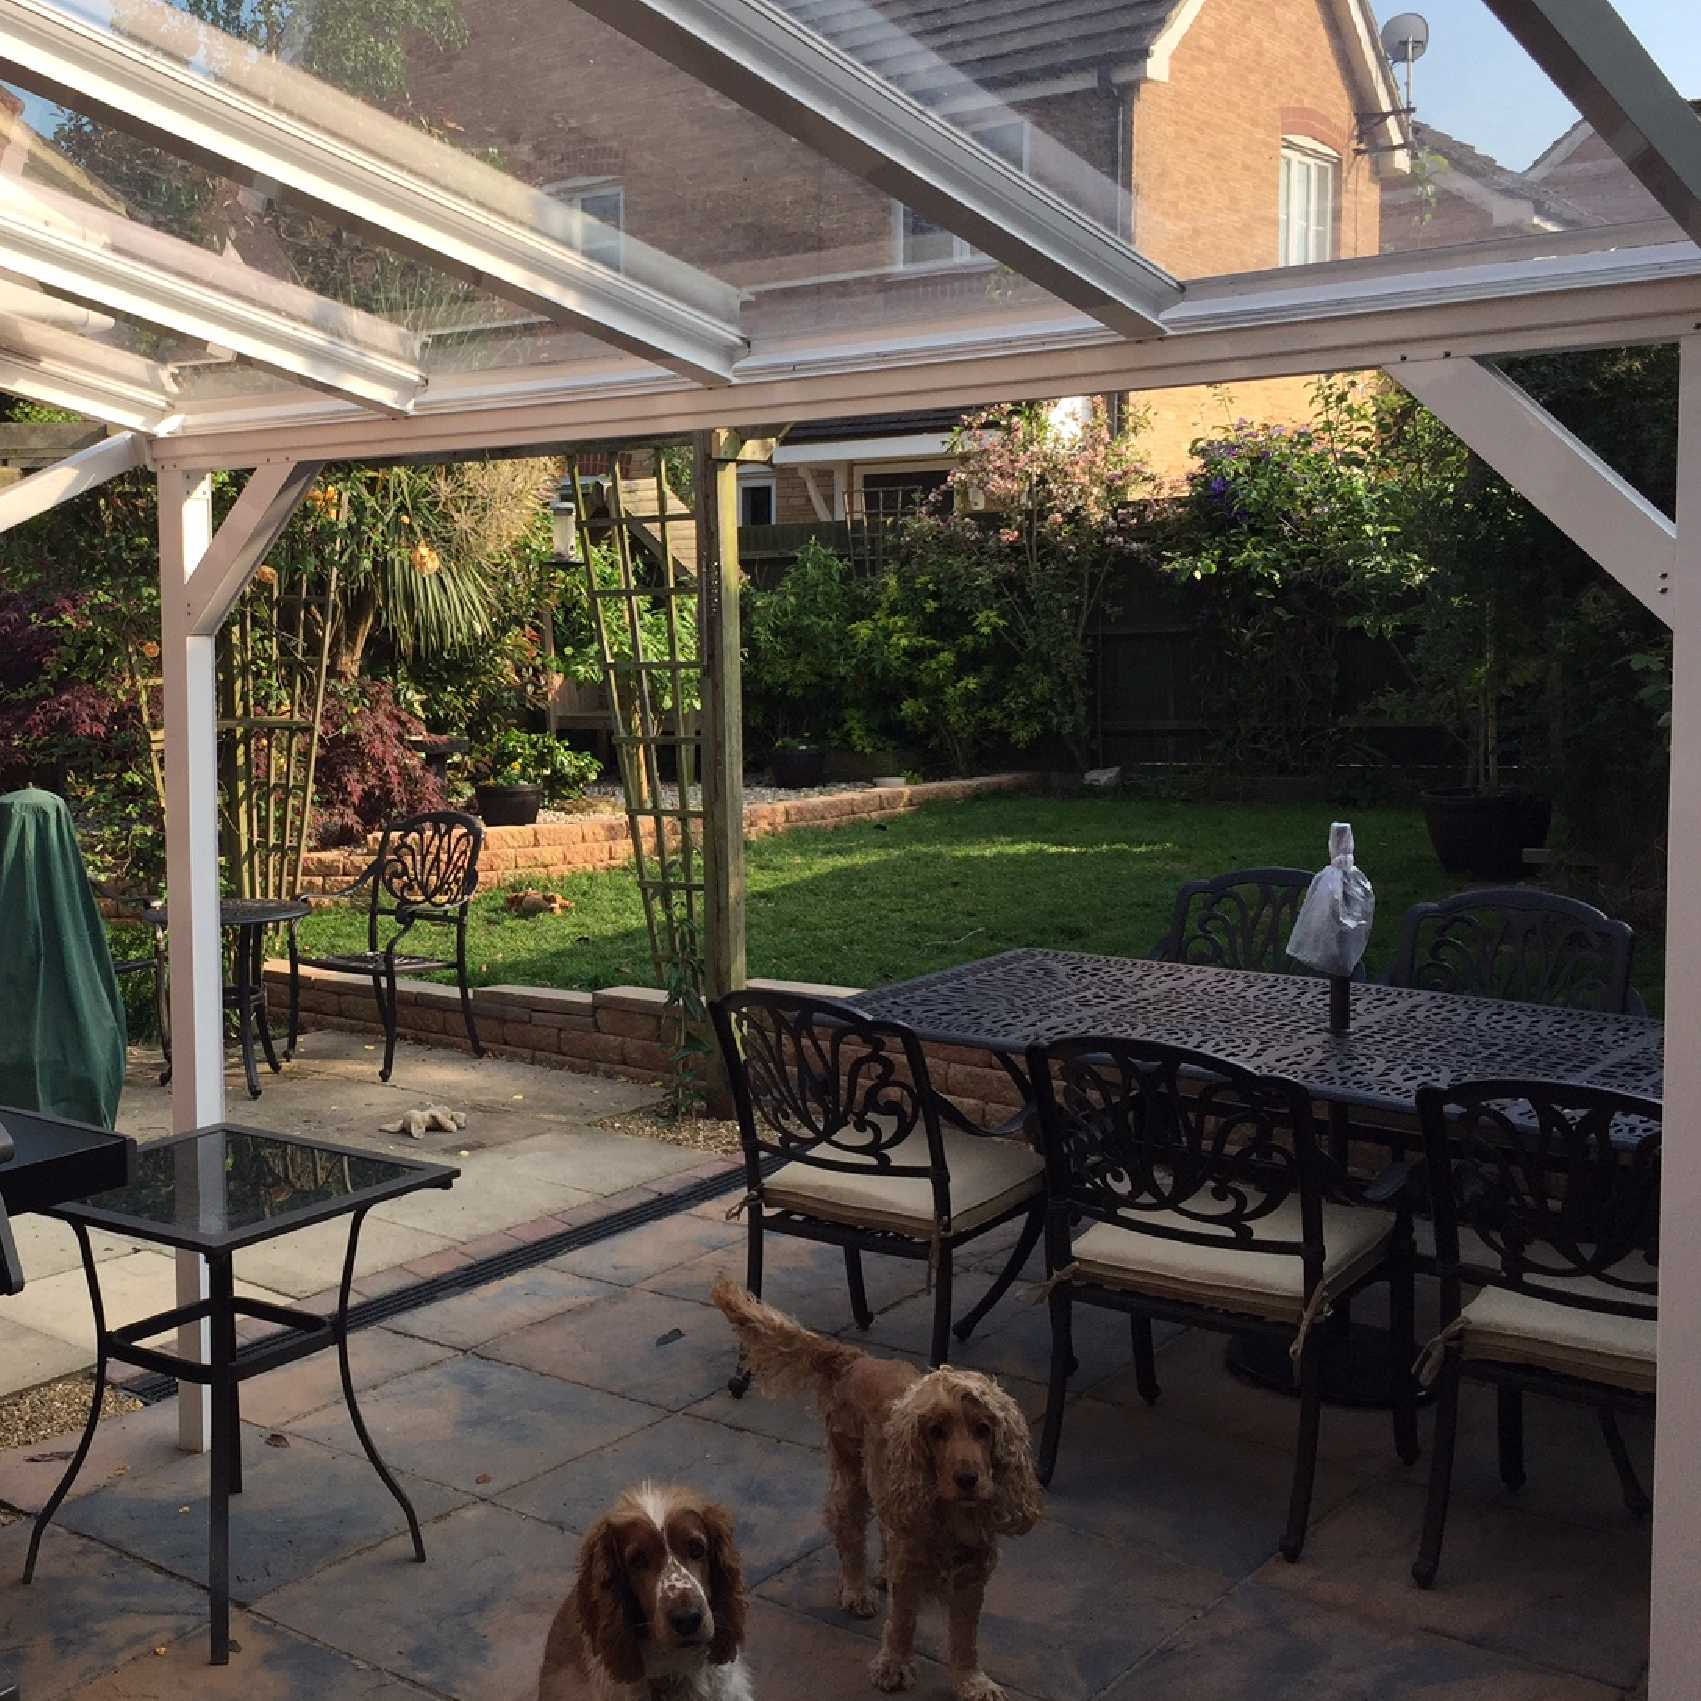 Affordable Omega Smart White Lean-To Canopy UNGLAZED for 6mm Glazing - 10.5m (W) x 2.5m (P), (5) Supporting Posts